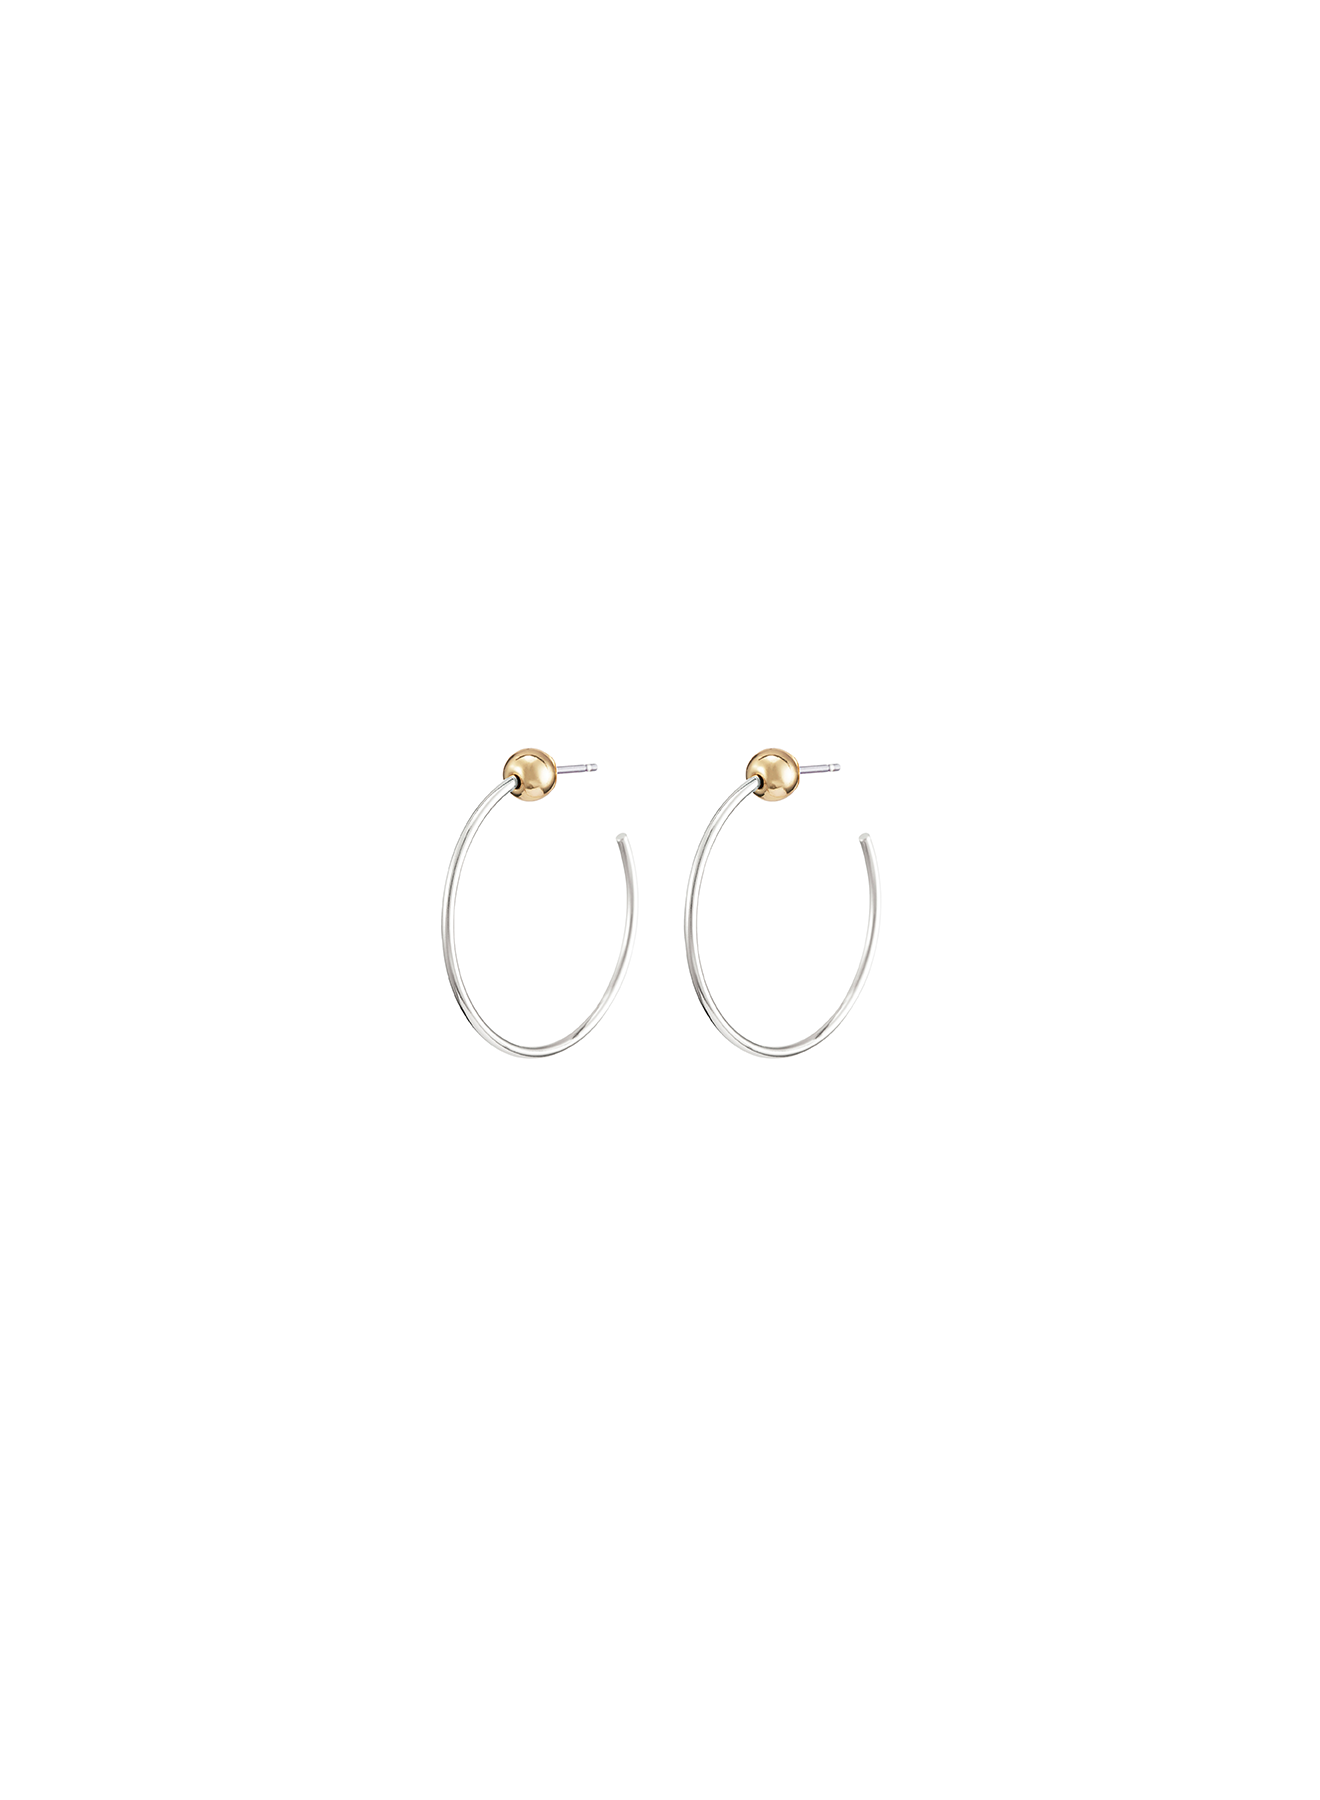 JENNY BIRD - ICON HOOPS XS IN TWO TONE